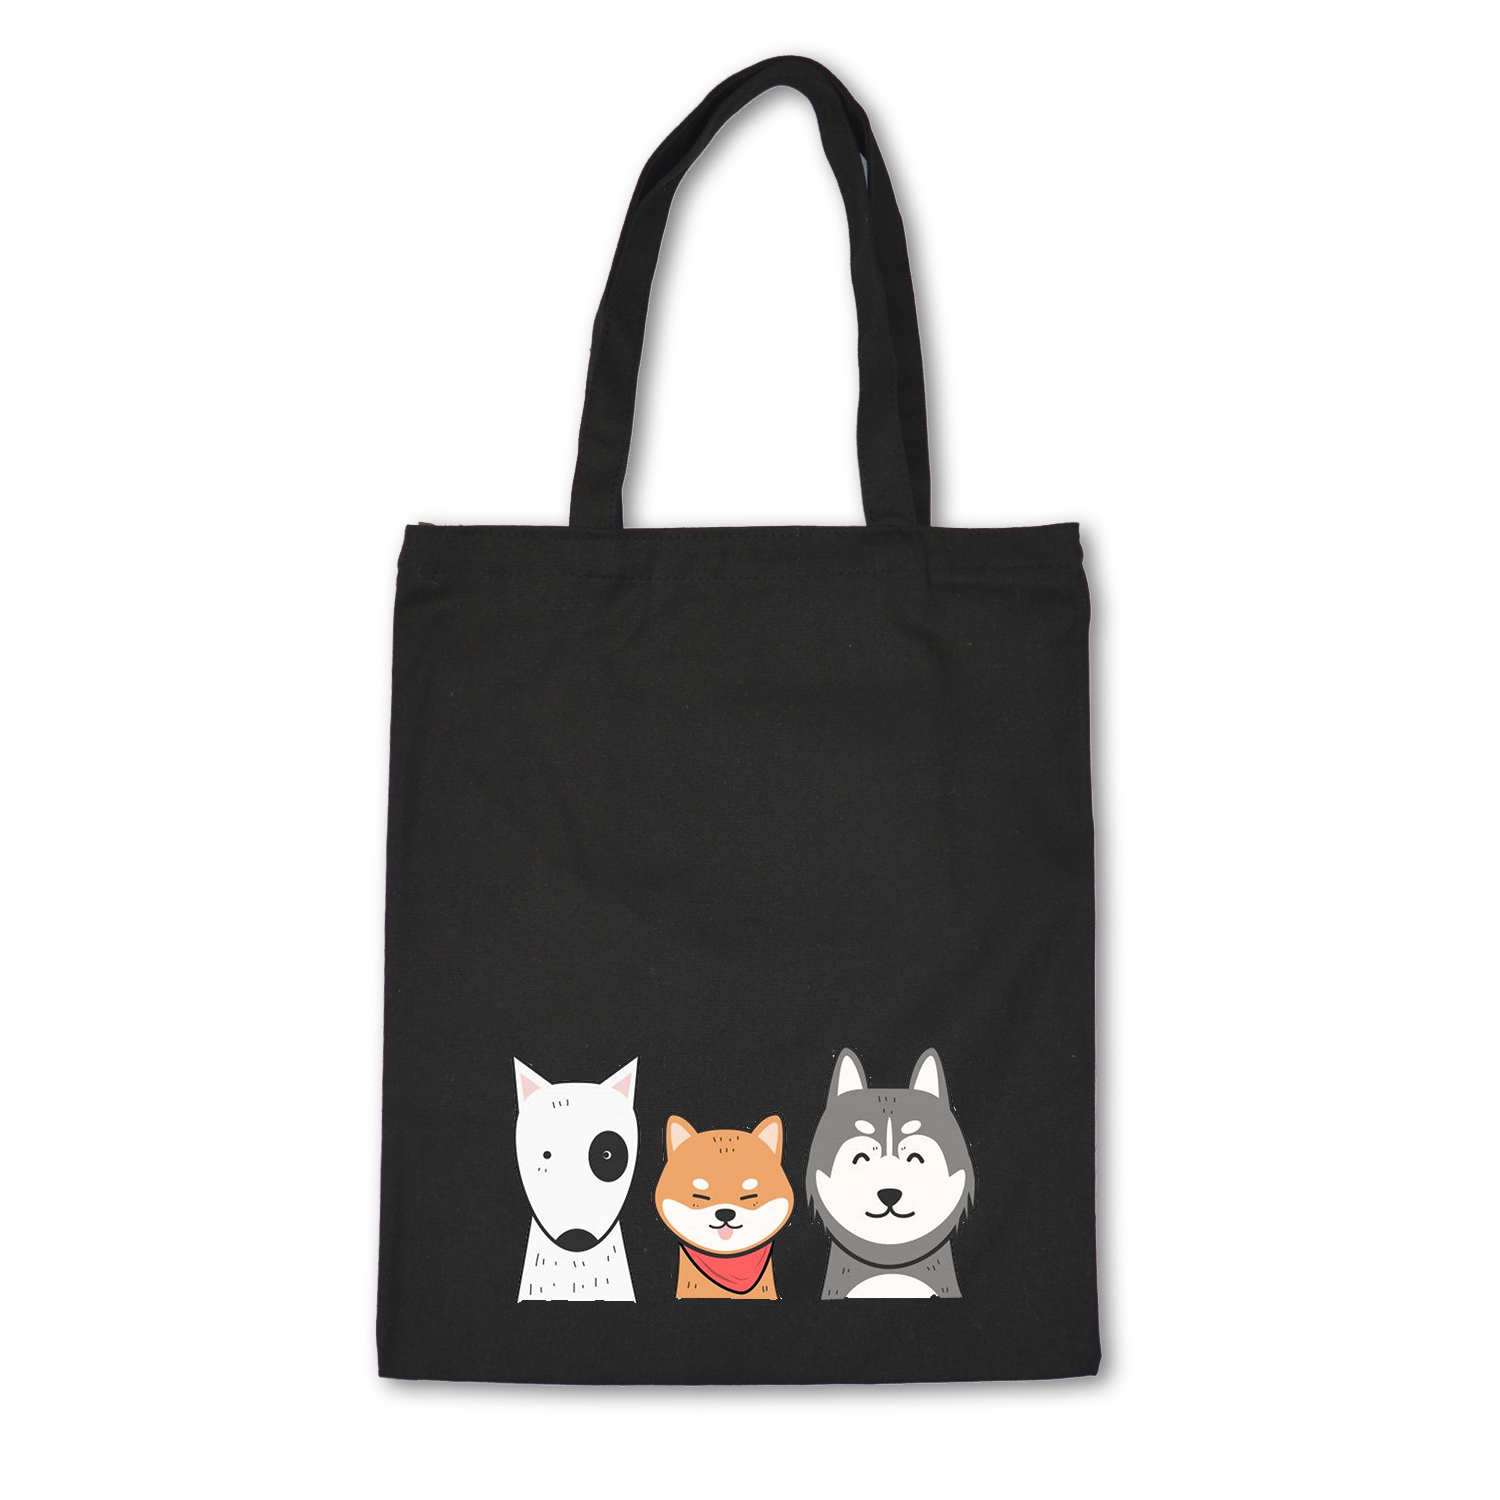 Cute Animals Women Canvas Shoulder Bags Female Eco Cloth Handbag Tote Grocery Reusable Foldable Shopping Bag Cotton Lining Pouch